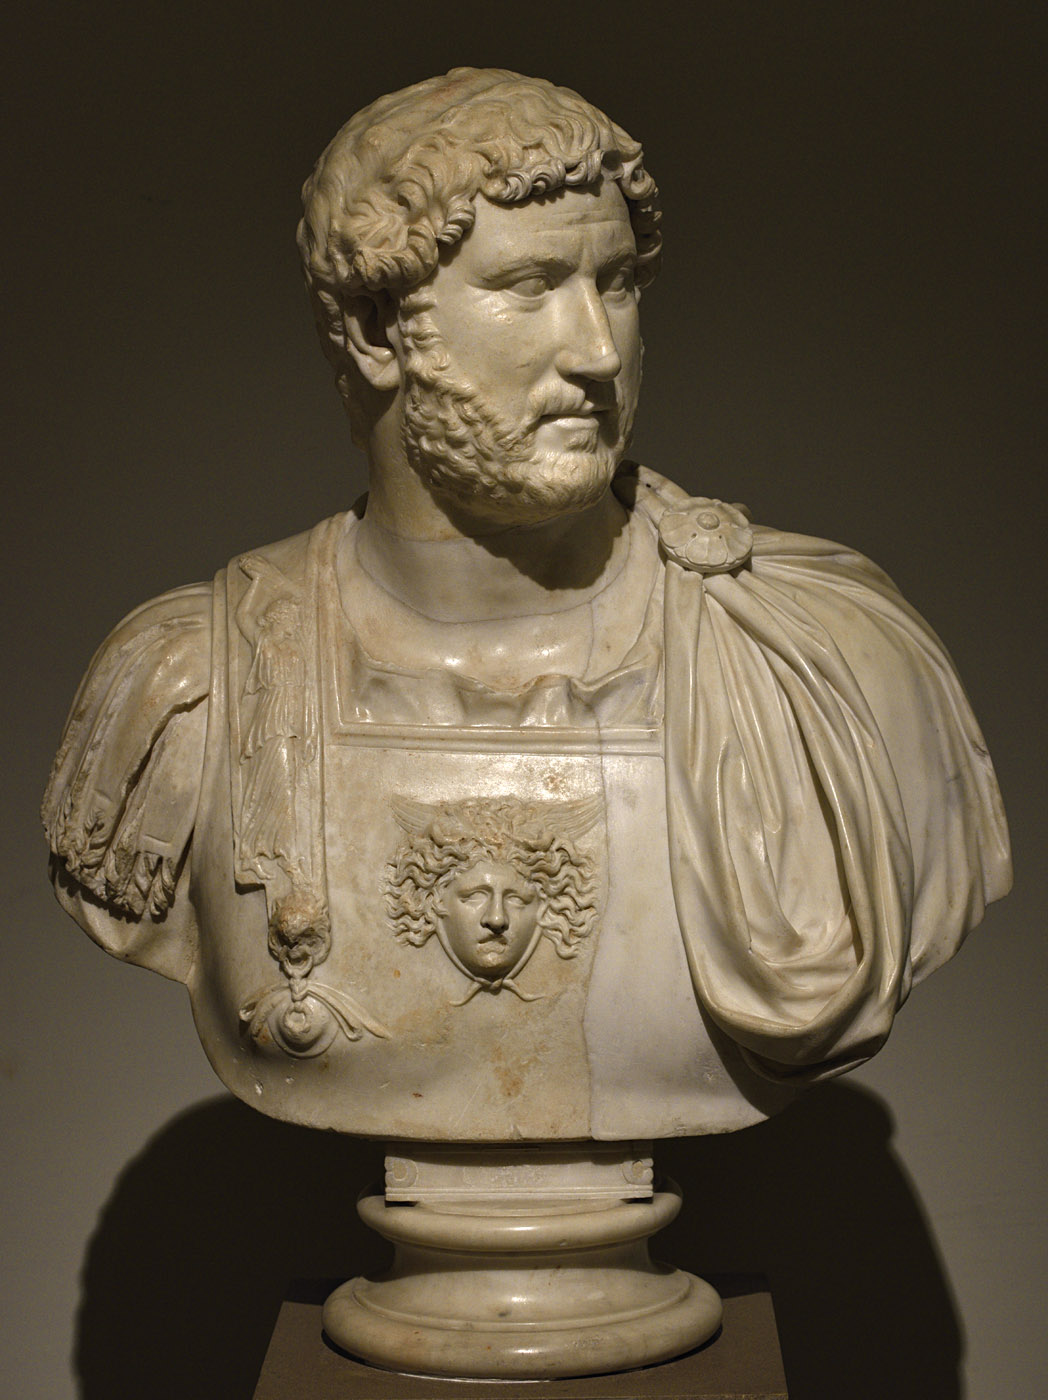 Hadrian set in a bust with cuirass. Marble. Ca. 130 CE. Inv. No. 6067. Naples, National Archaeological Museum